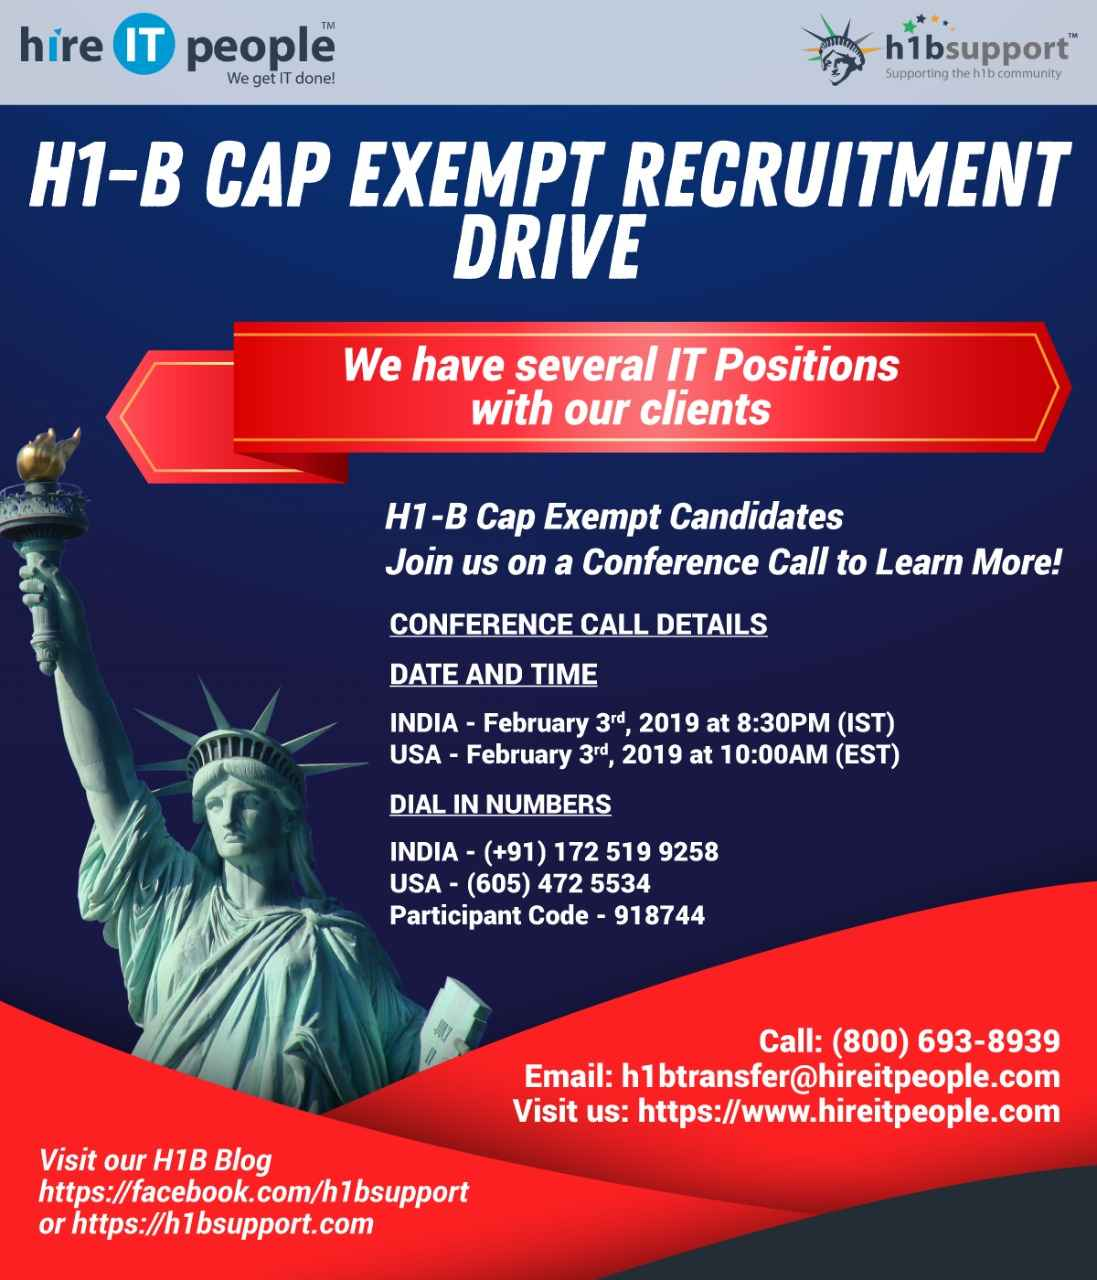 H1-B CAP EXEMPT RECRUITMENT DRIVE